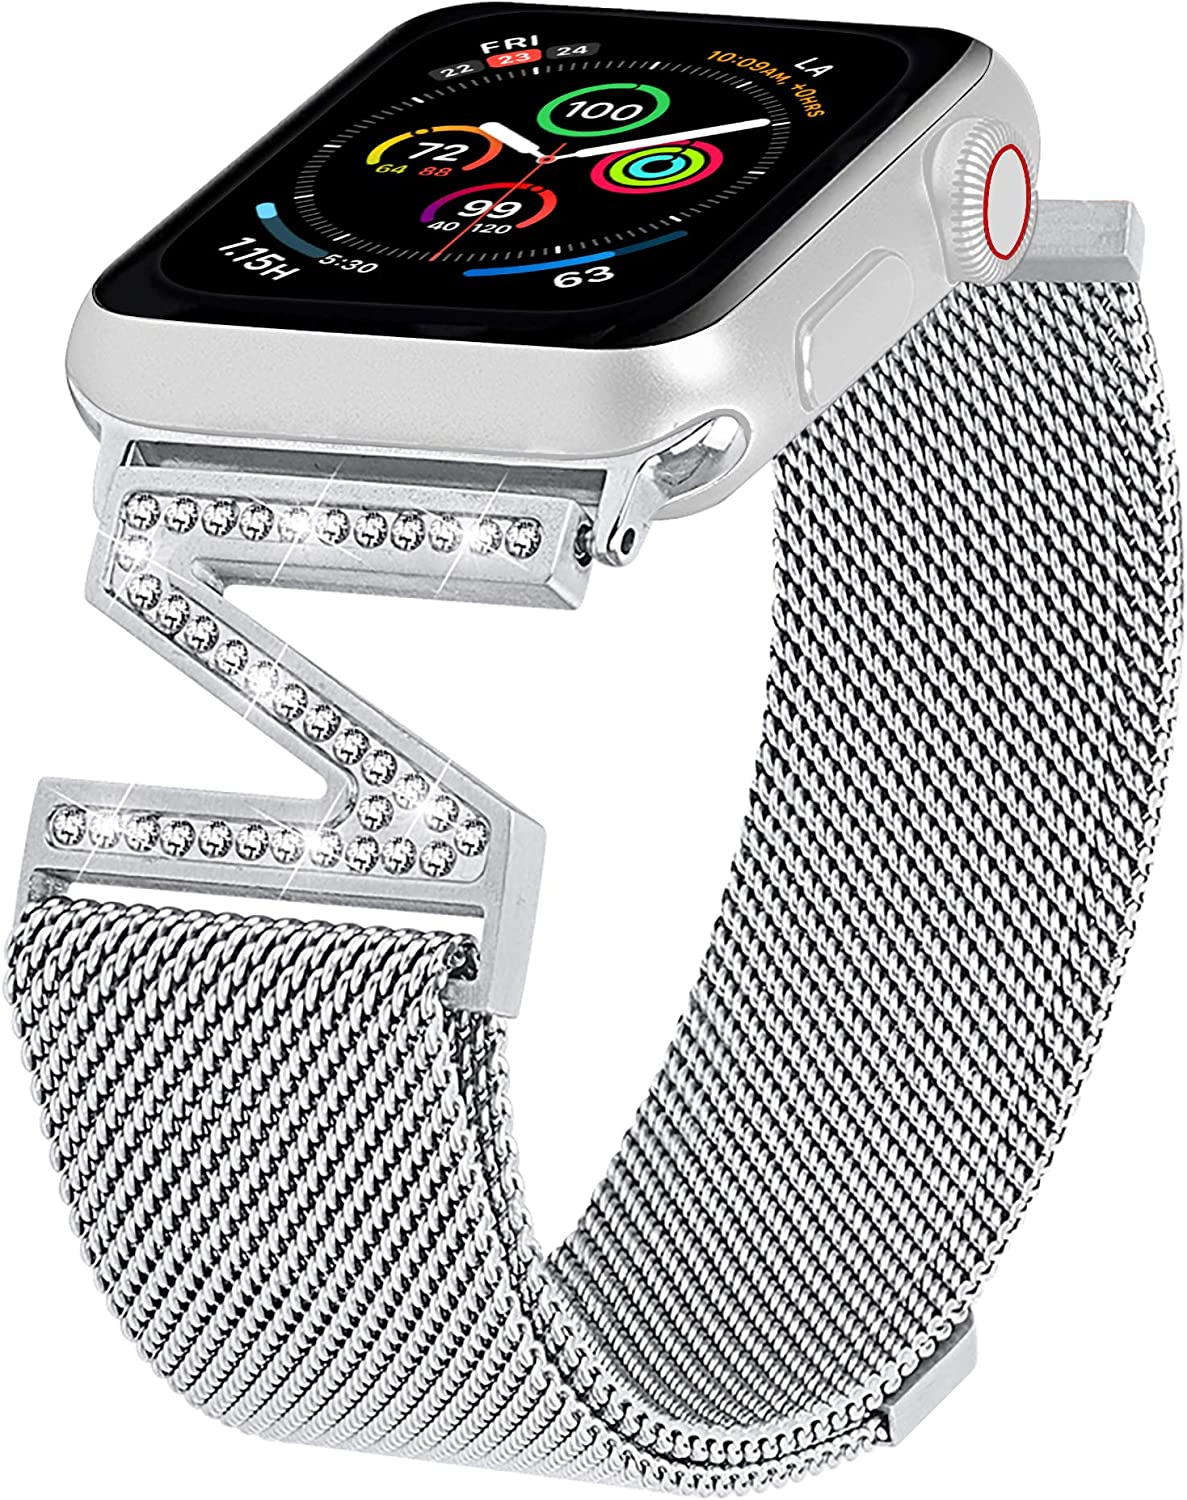 ALAMHI Magnetic Watch Band Compatible with Apple Watch 38mm 40mm 42mm 44mm, Adjustable Stainless Steel Clasp Mesh Wristband Sport Loop for iWatch Series 6/5/4/3/2/1/SE for Women with Bling Diamond.